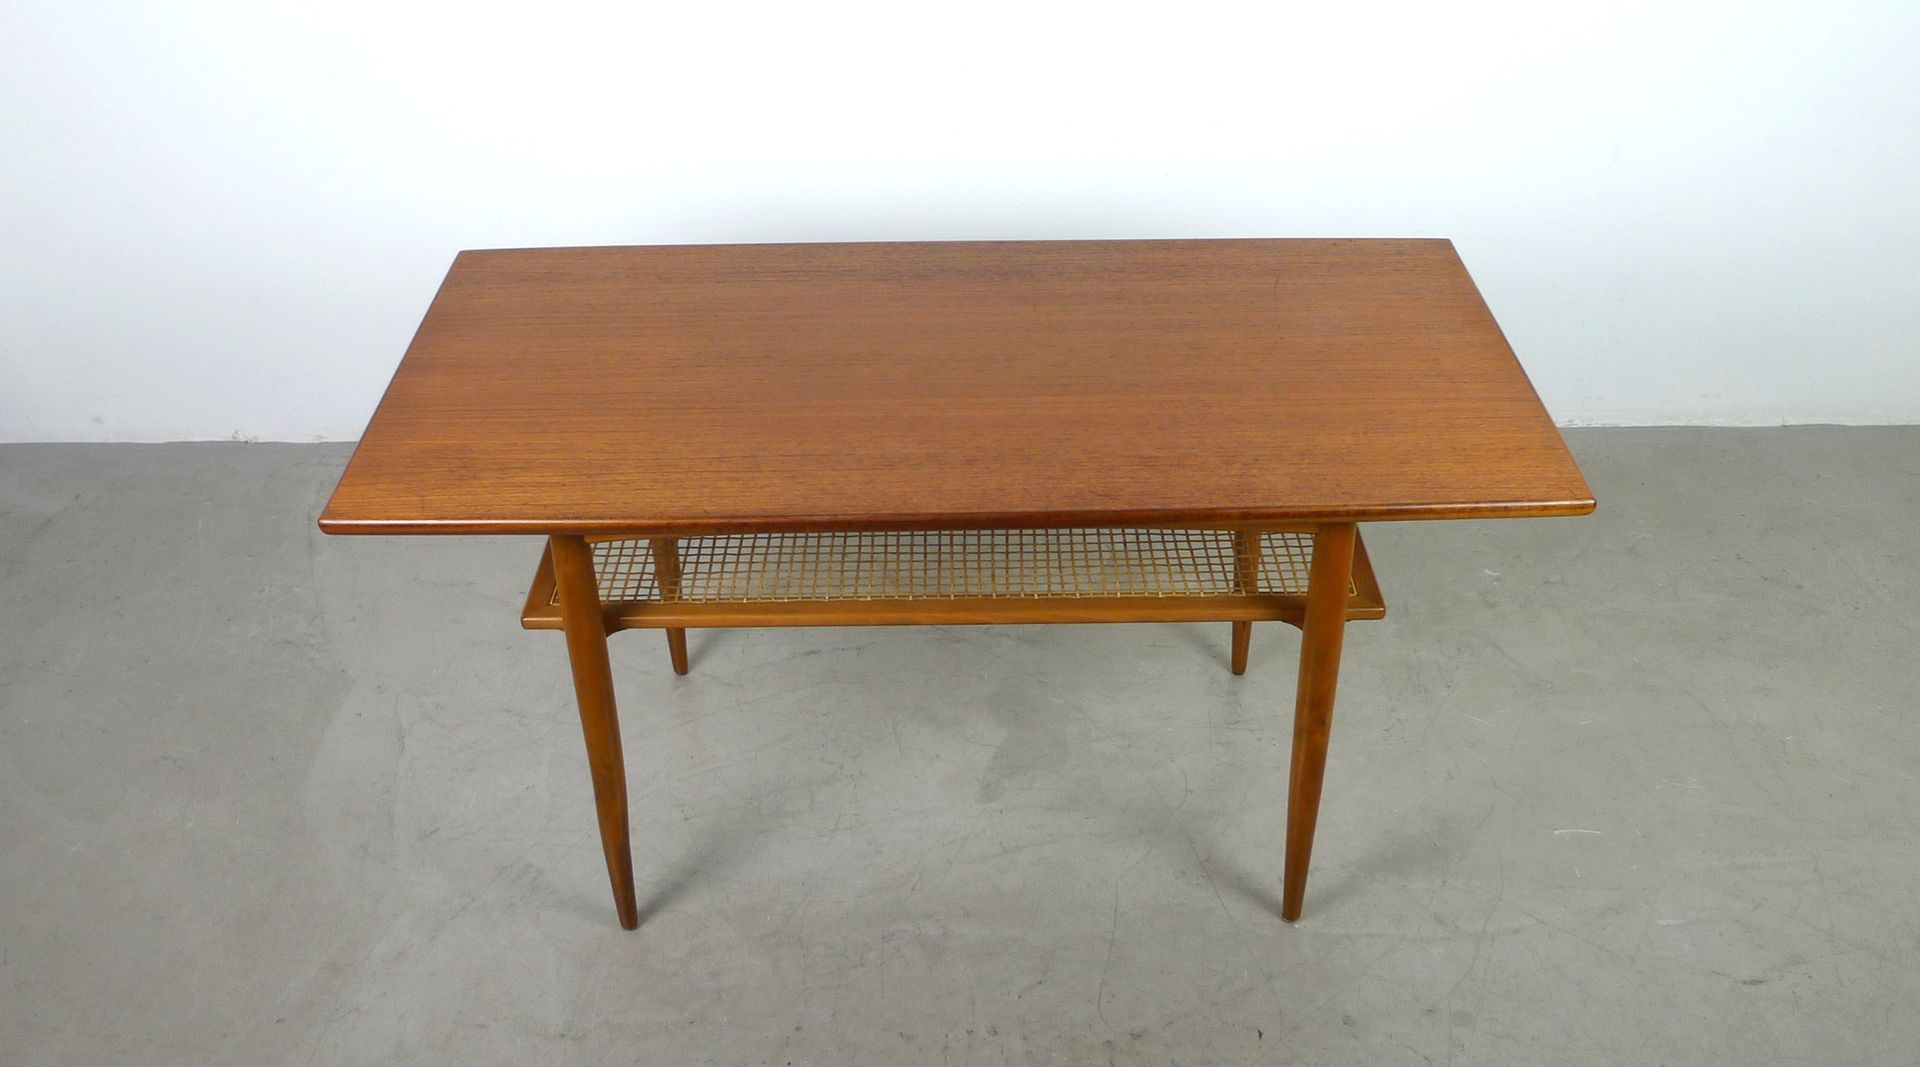 teak coffee table with shelf from knoll 1950s for sale at pamono. Black Bedroom Furniture Sets. Home Design Ideas